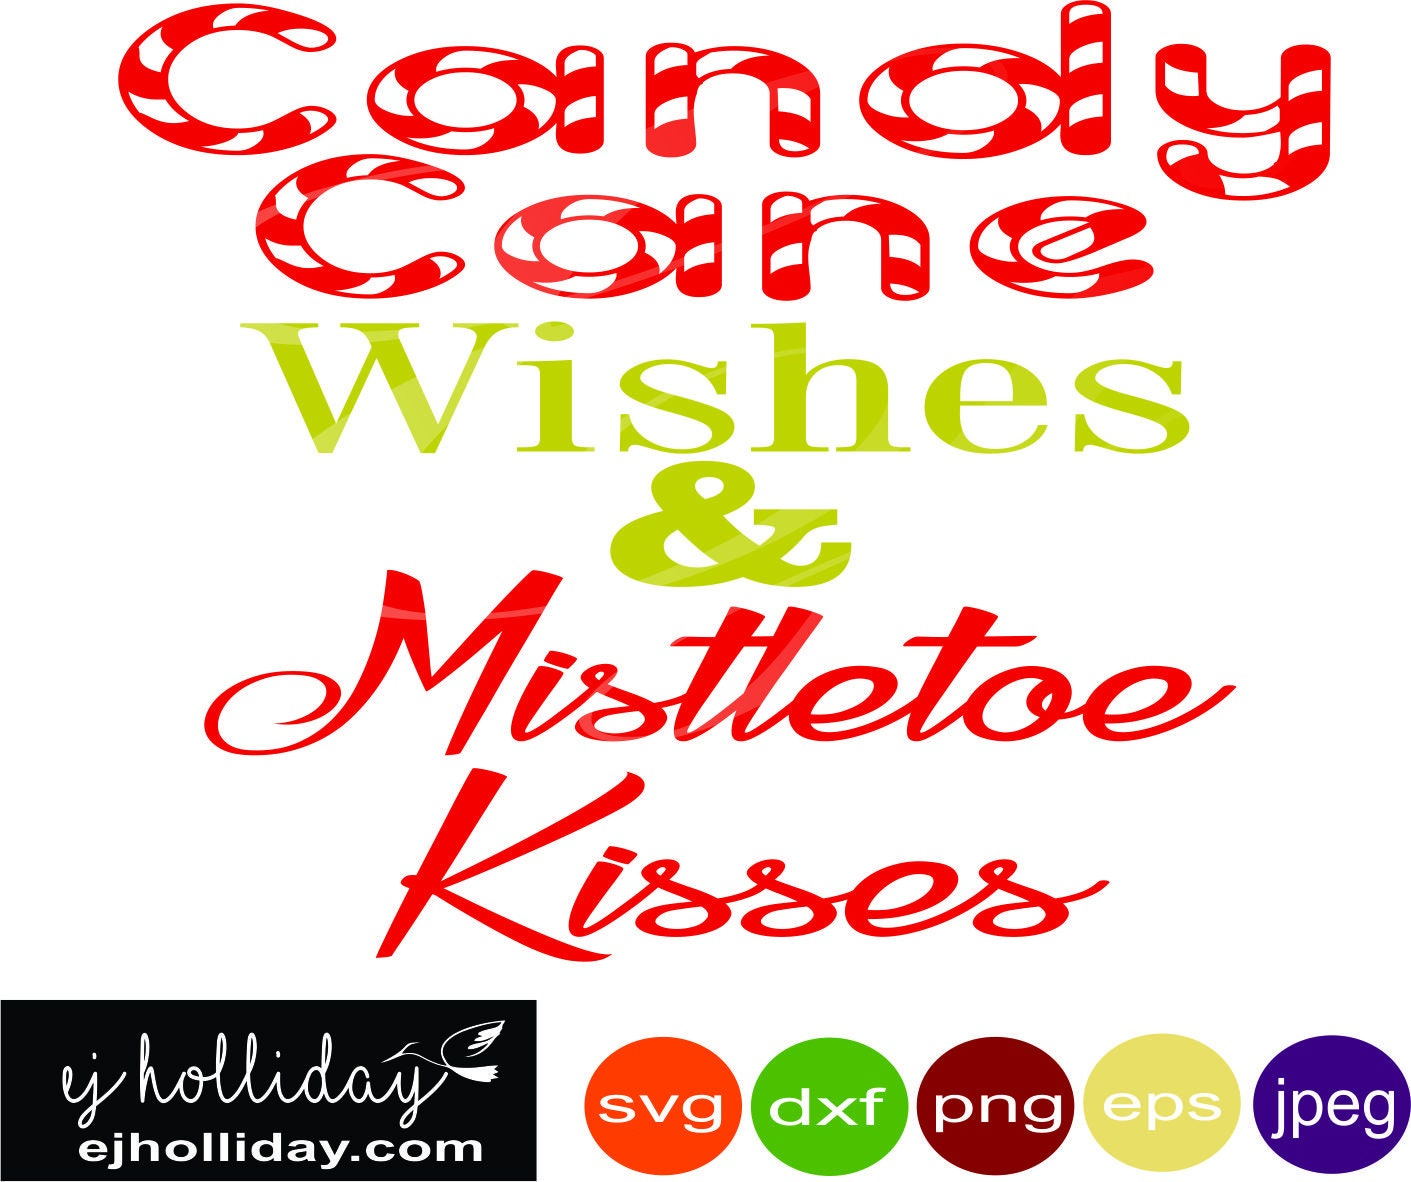 Candy Cane Wishes And Mistletoe Kisses Svg Dxf Png Eps Jpeg Etsy